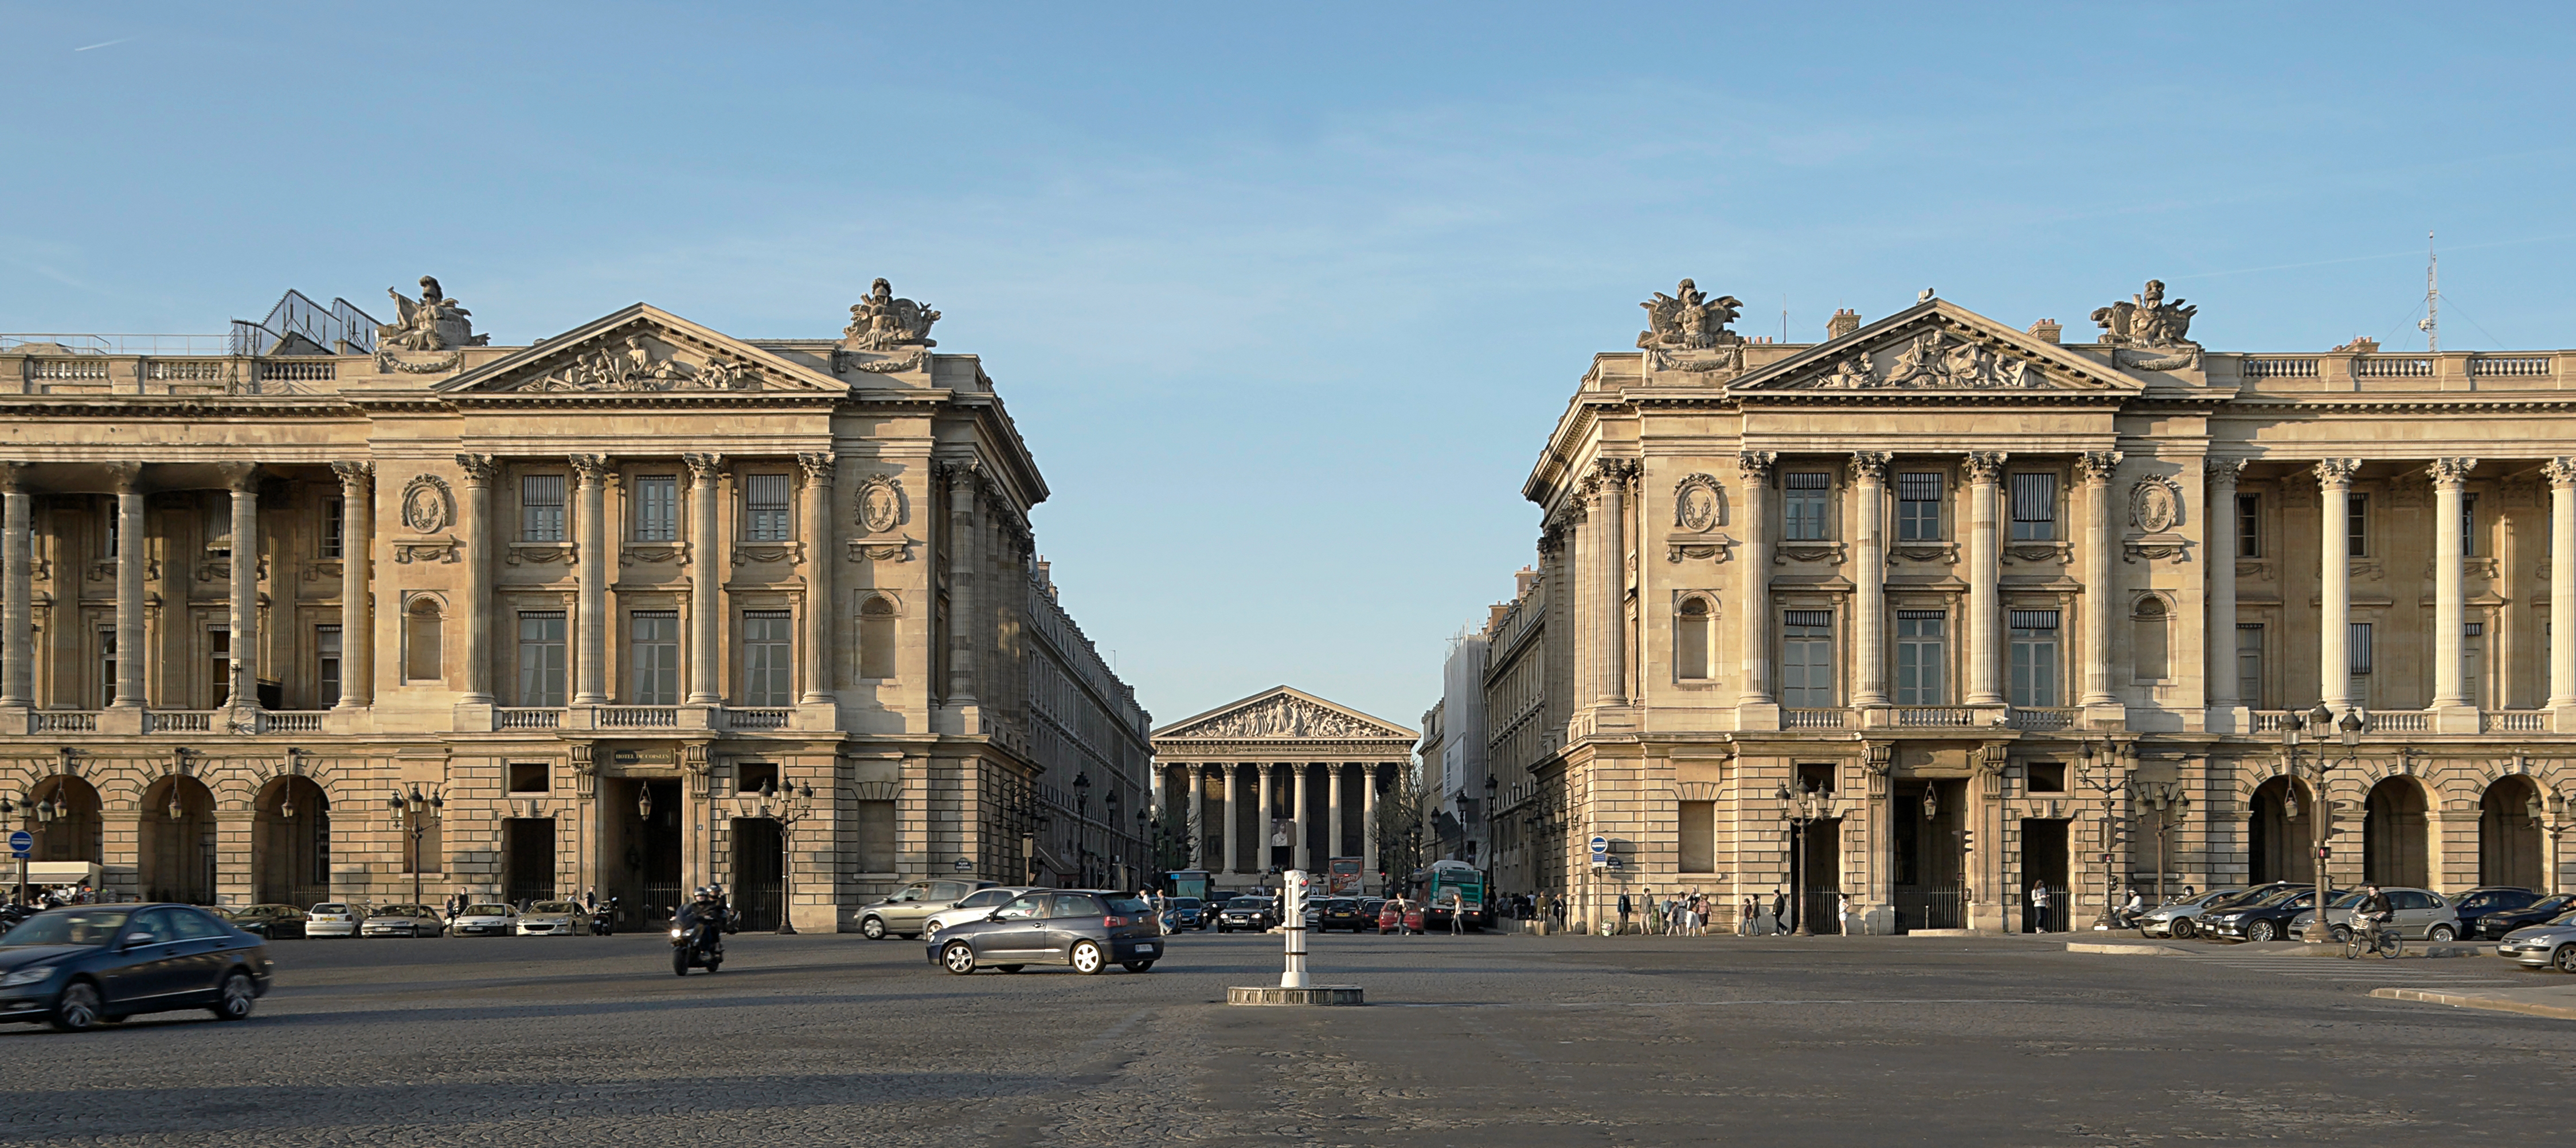 http://upload.wikimedia.org/wikipedia/commons/8/8b/Rue_Royale_Concorde_Madeleine.jpg